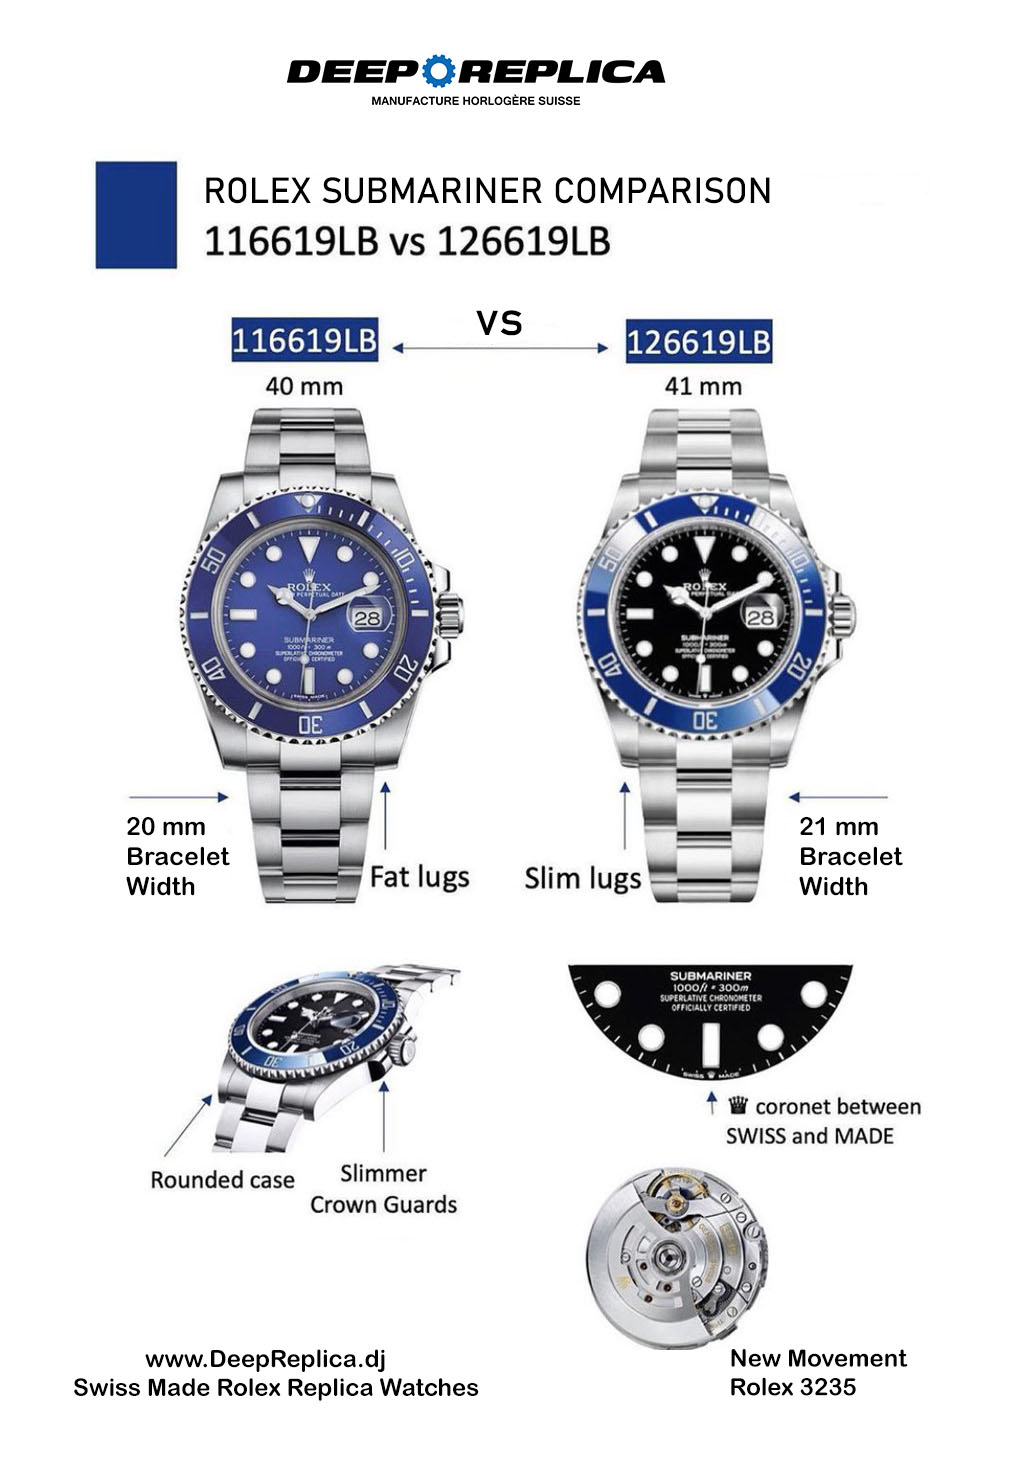 New Rolex Submariner 41mm Vs 40mm Comparison Infographic. What's New On The Updated 41mm Models?